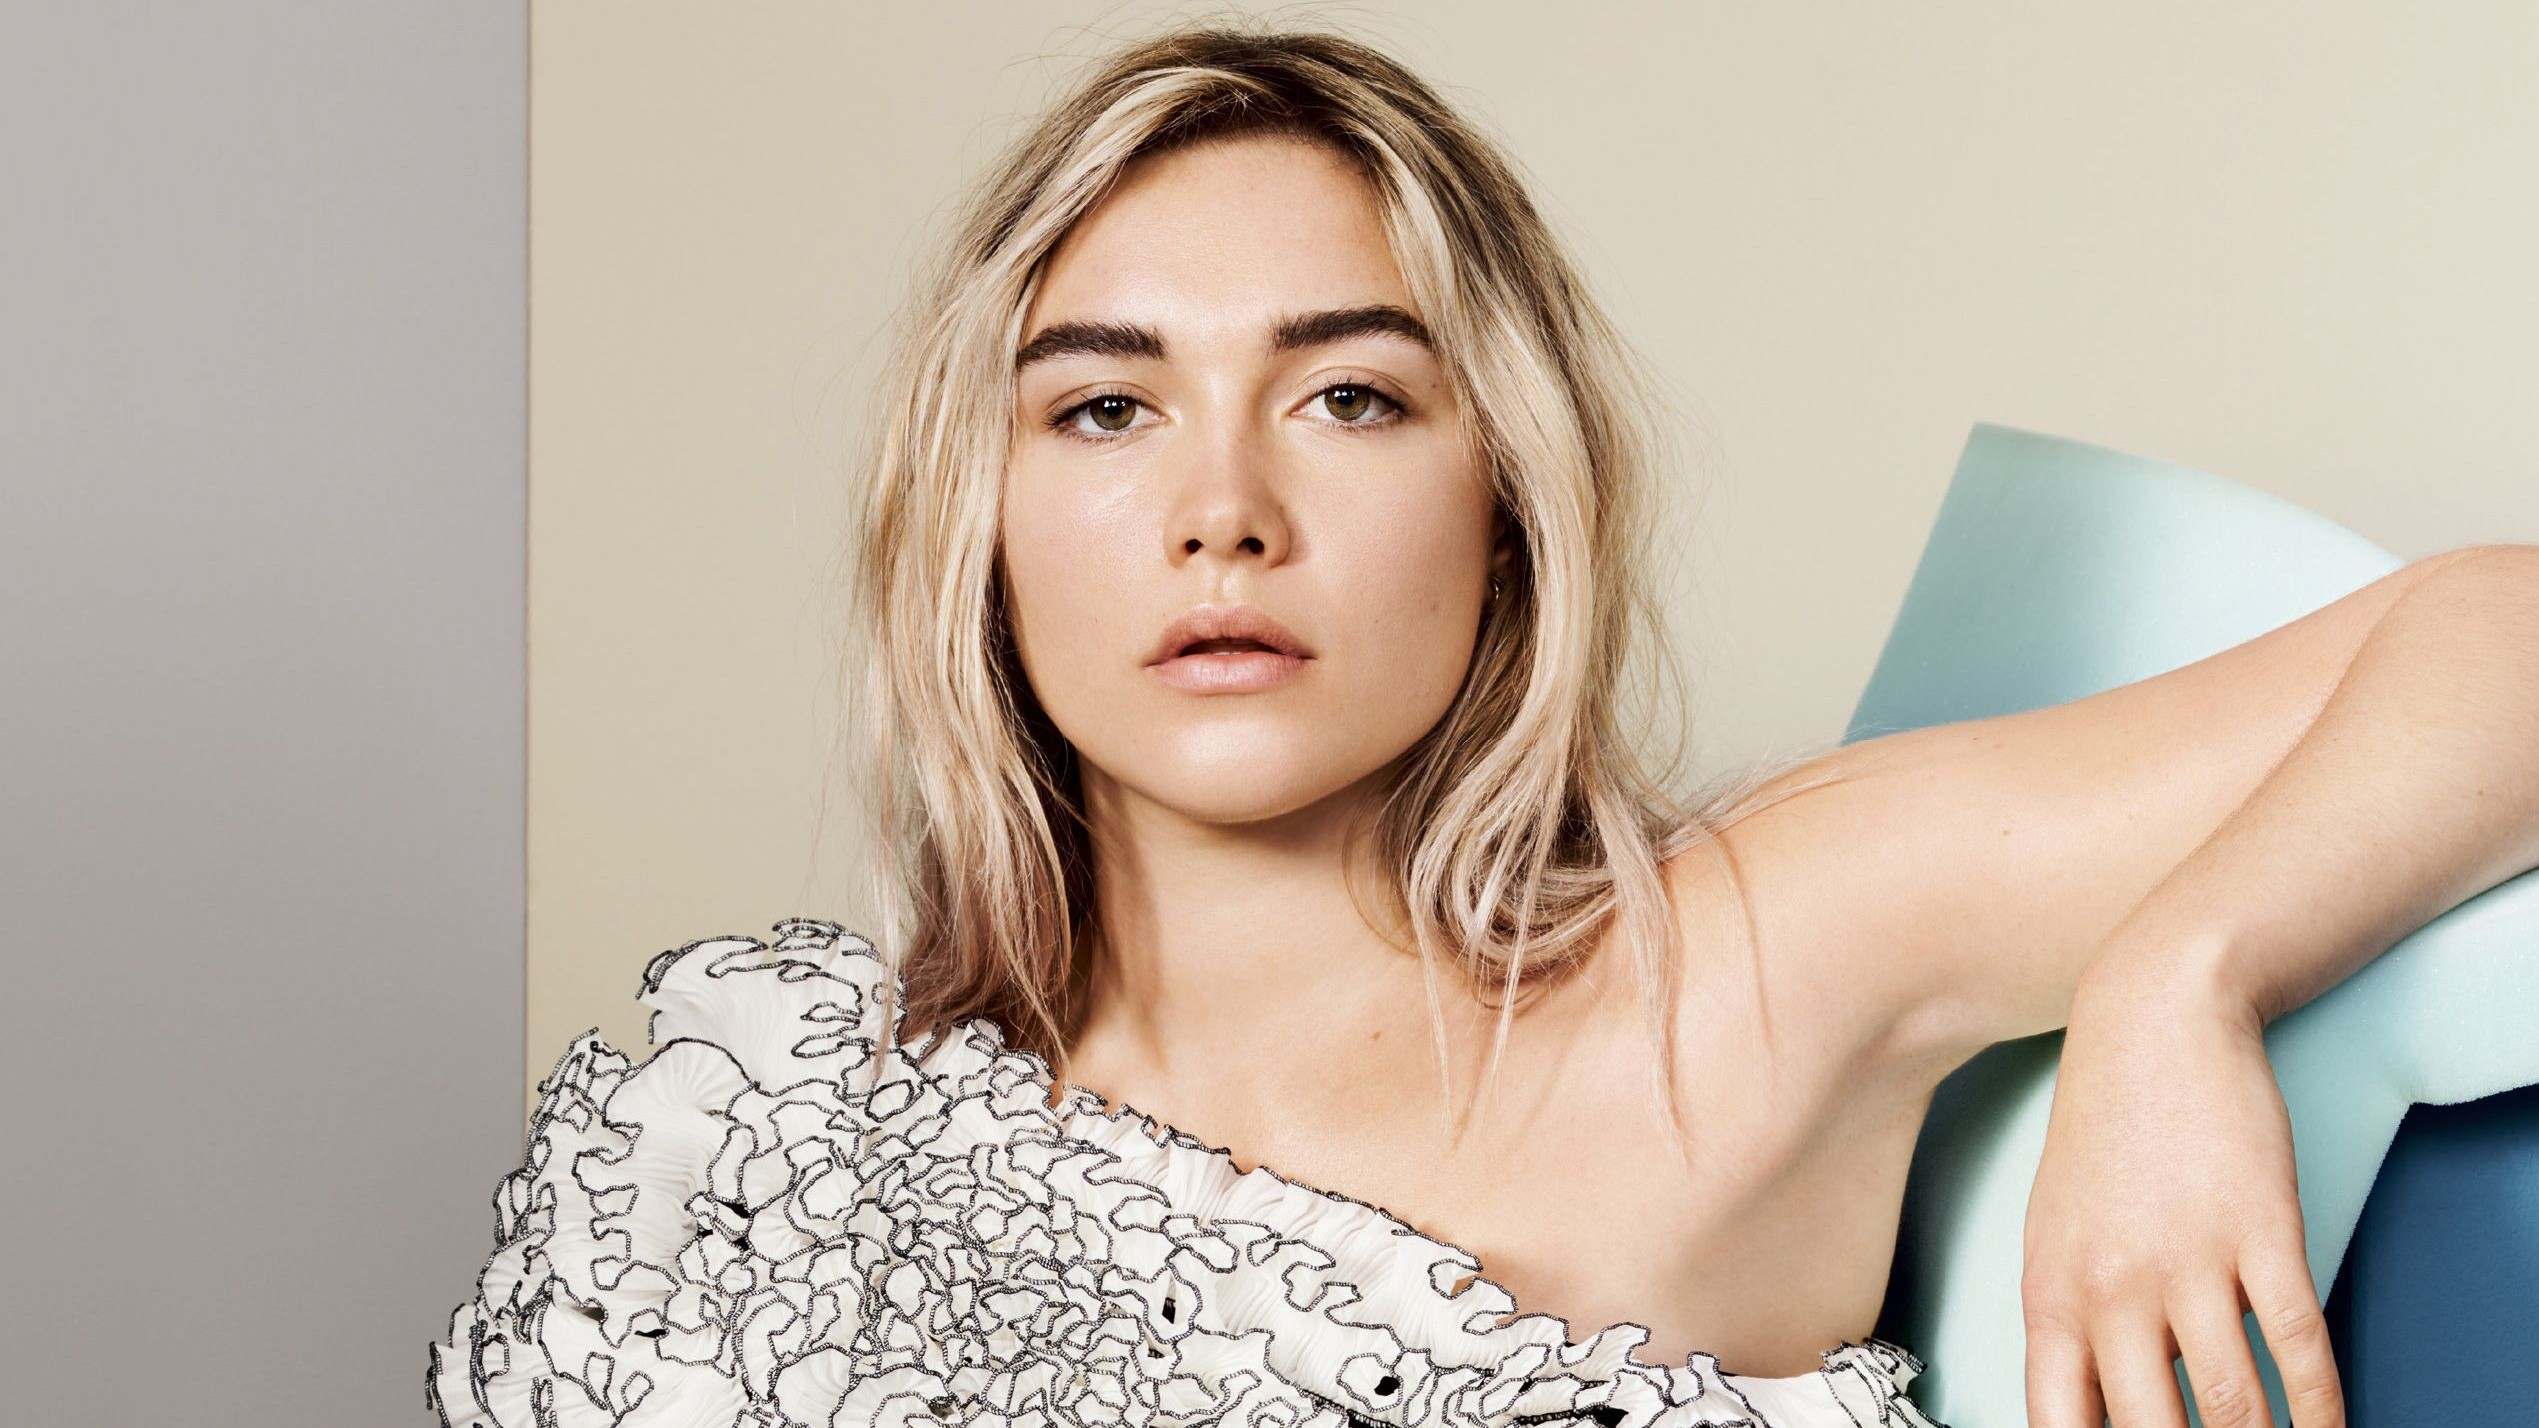 don't worry darling florence pugh